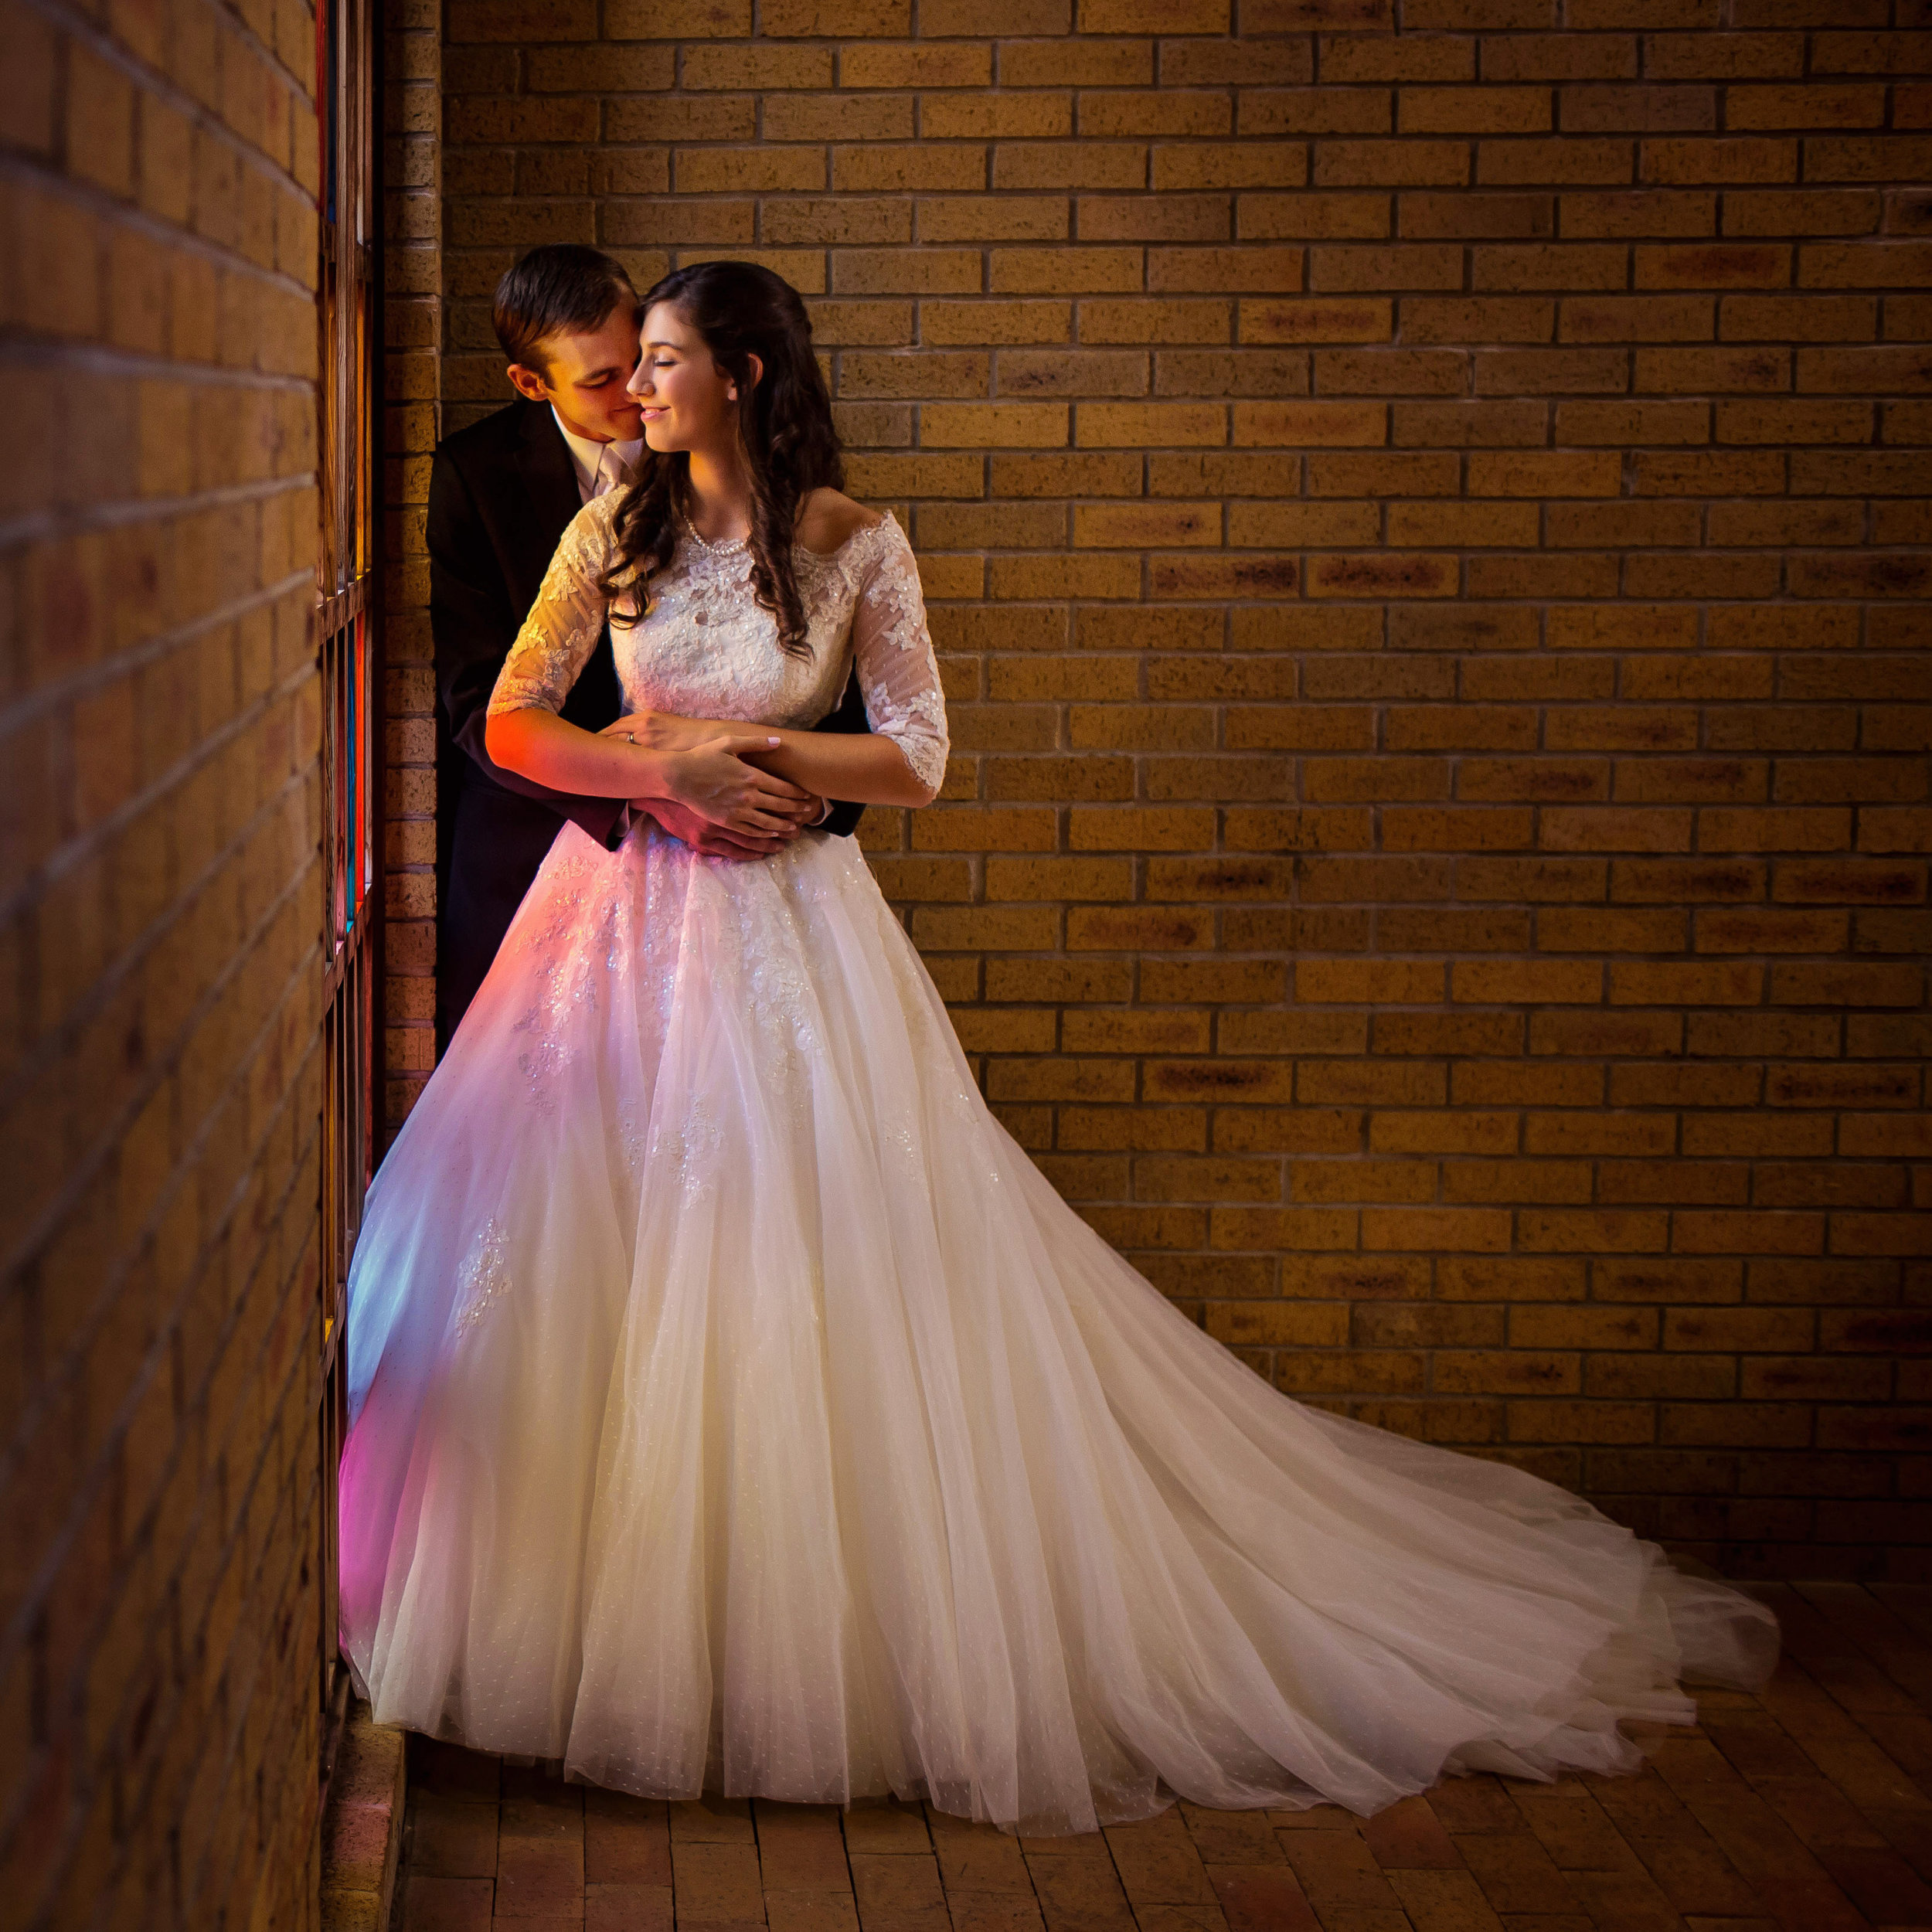 WEDDINGS - From moving moments to powerhouse portraits, we love celebrating love.